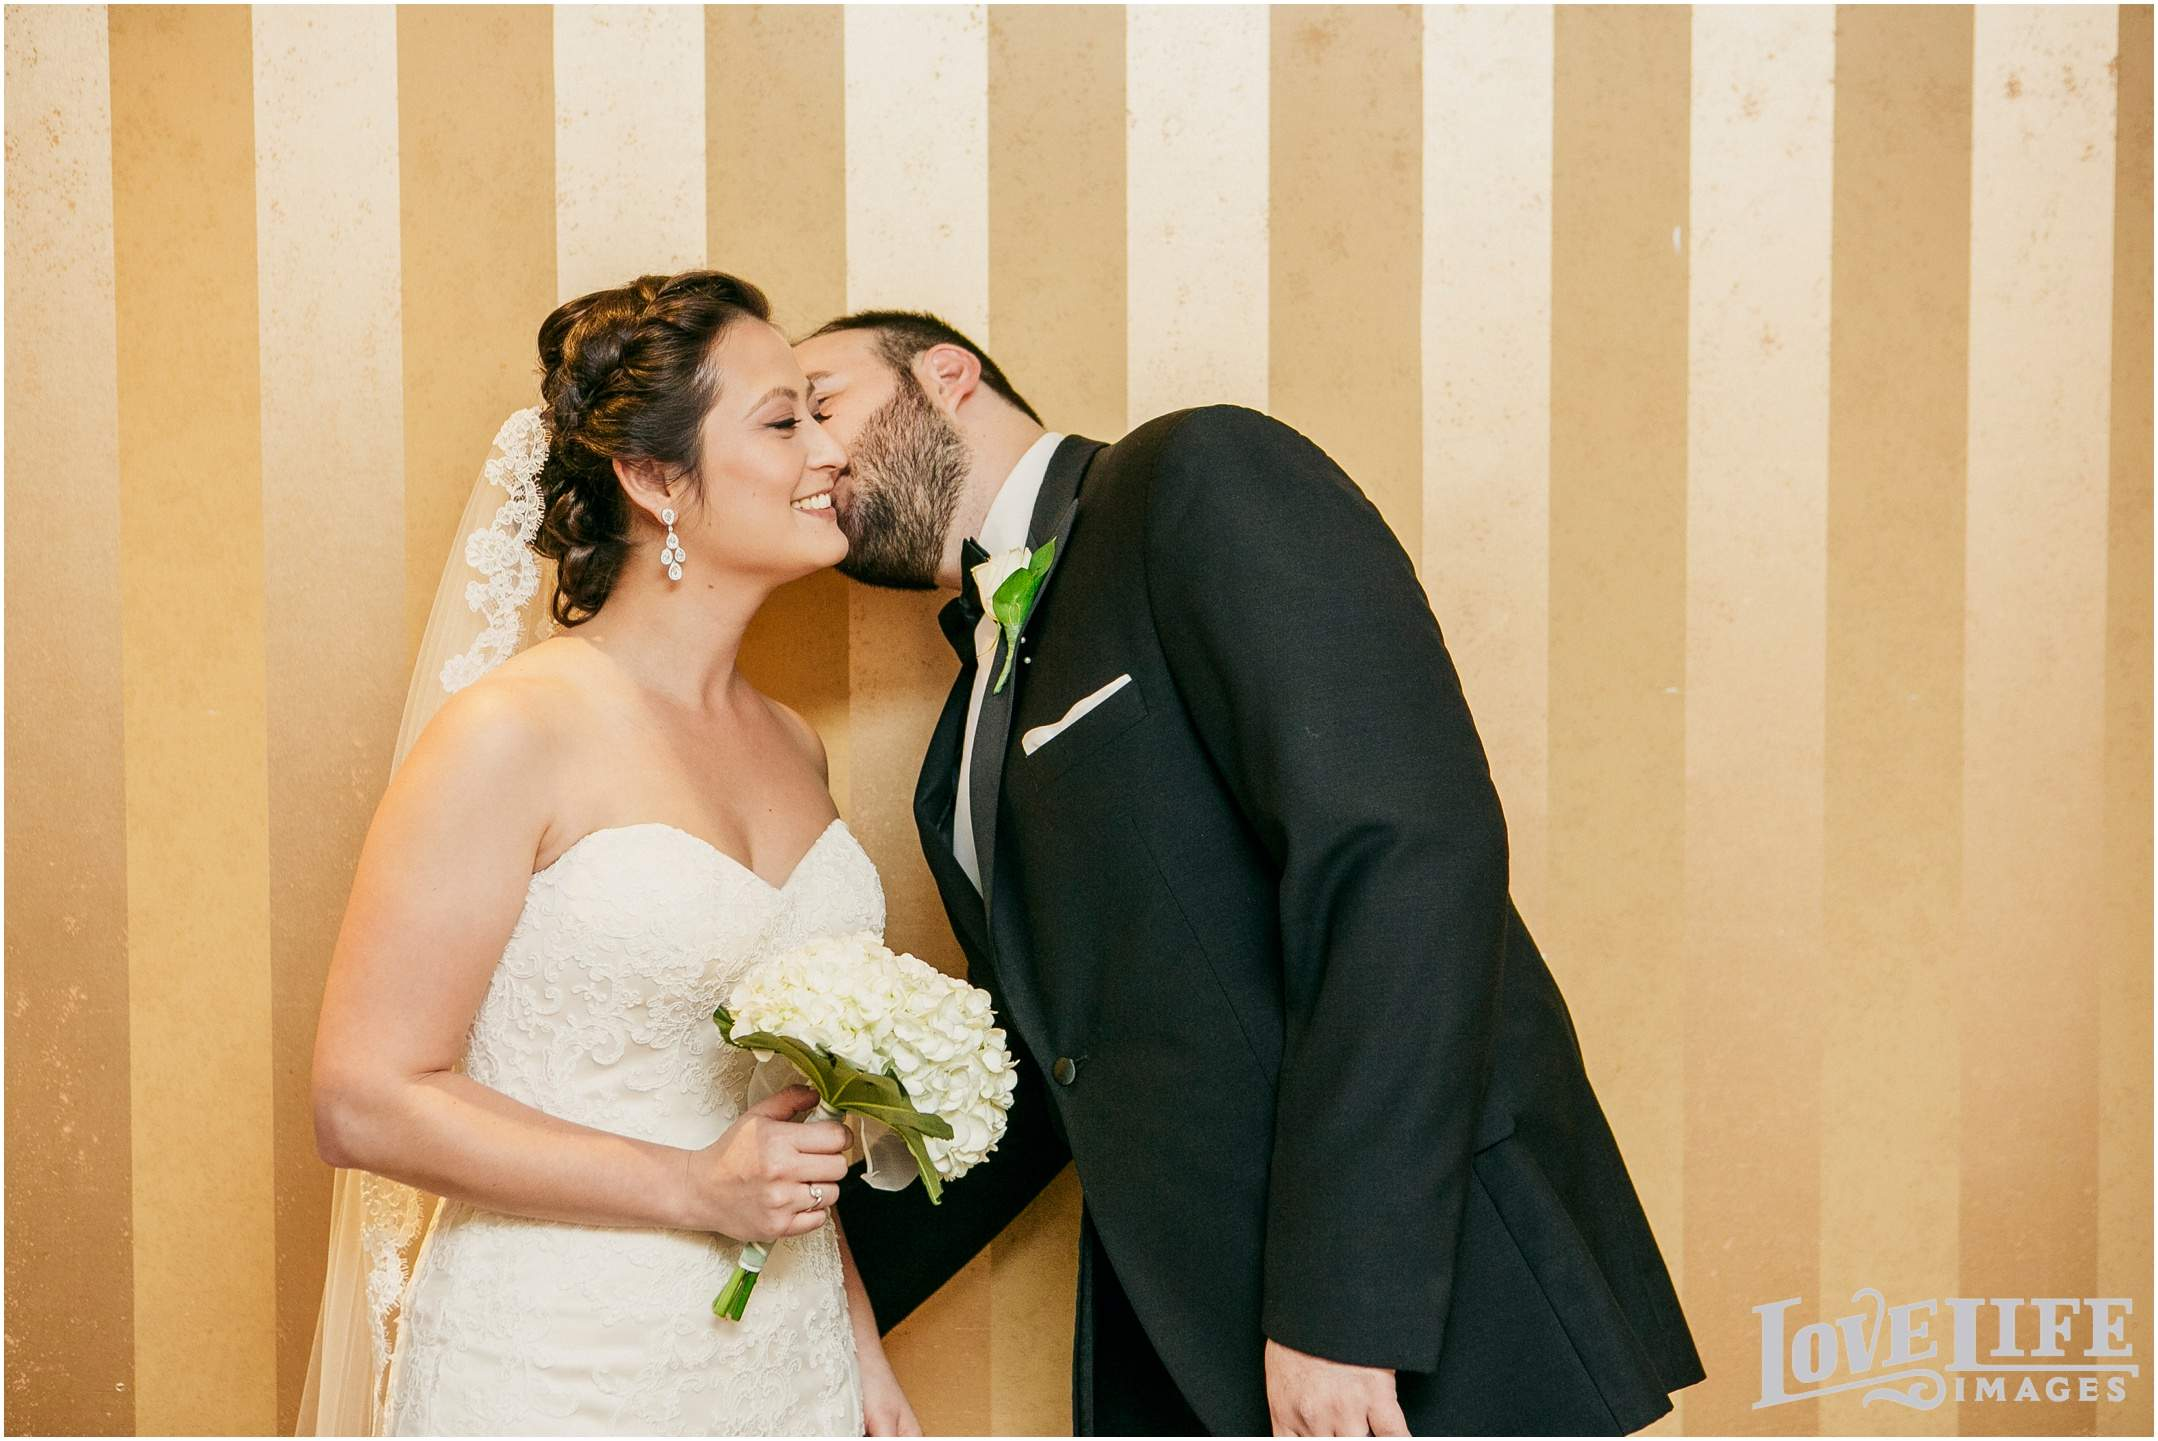 Hotel Monaco Baltimore WeddingHotel Monaco Baltimore Wedding